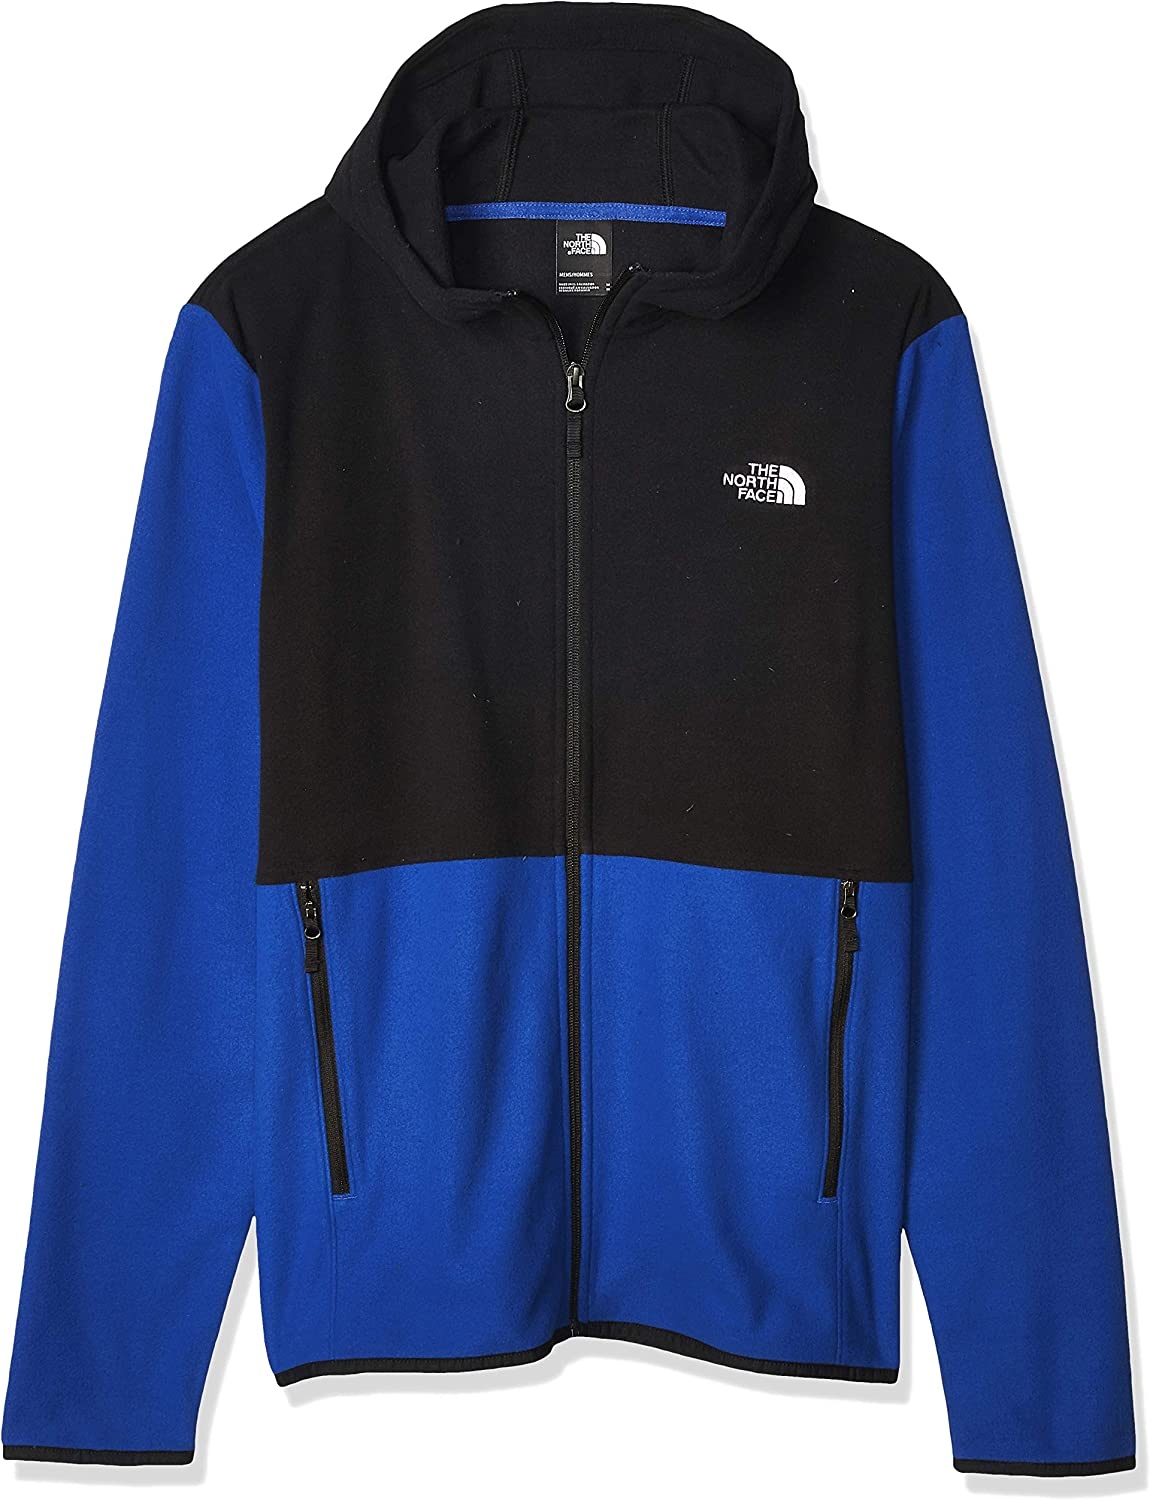 The North Face TKA Glacier Chaqueta de Forro Polar